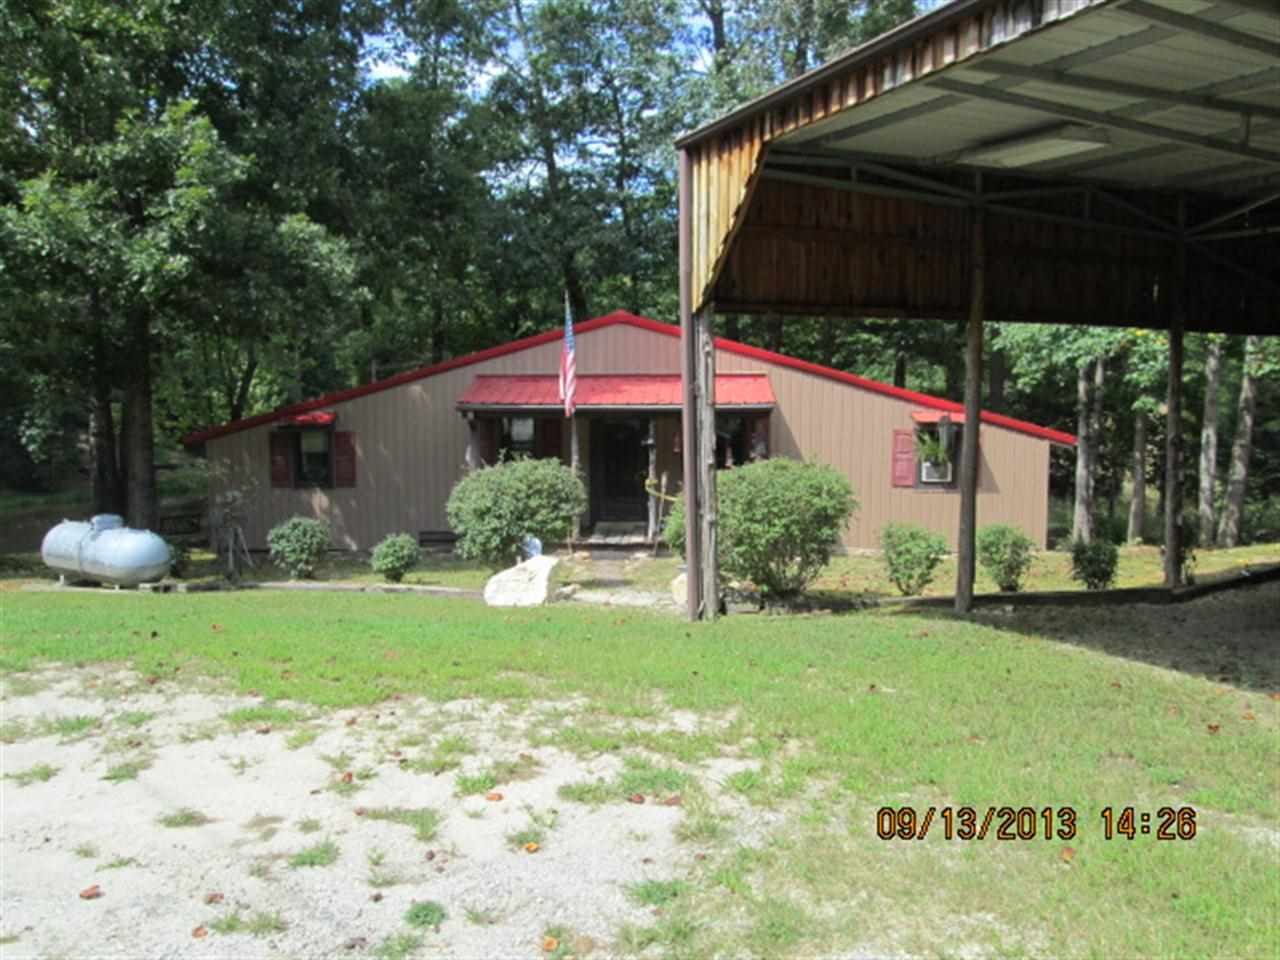 17.33 acres in Iva, South Carolina